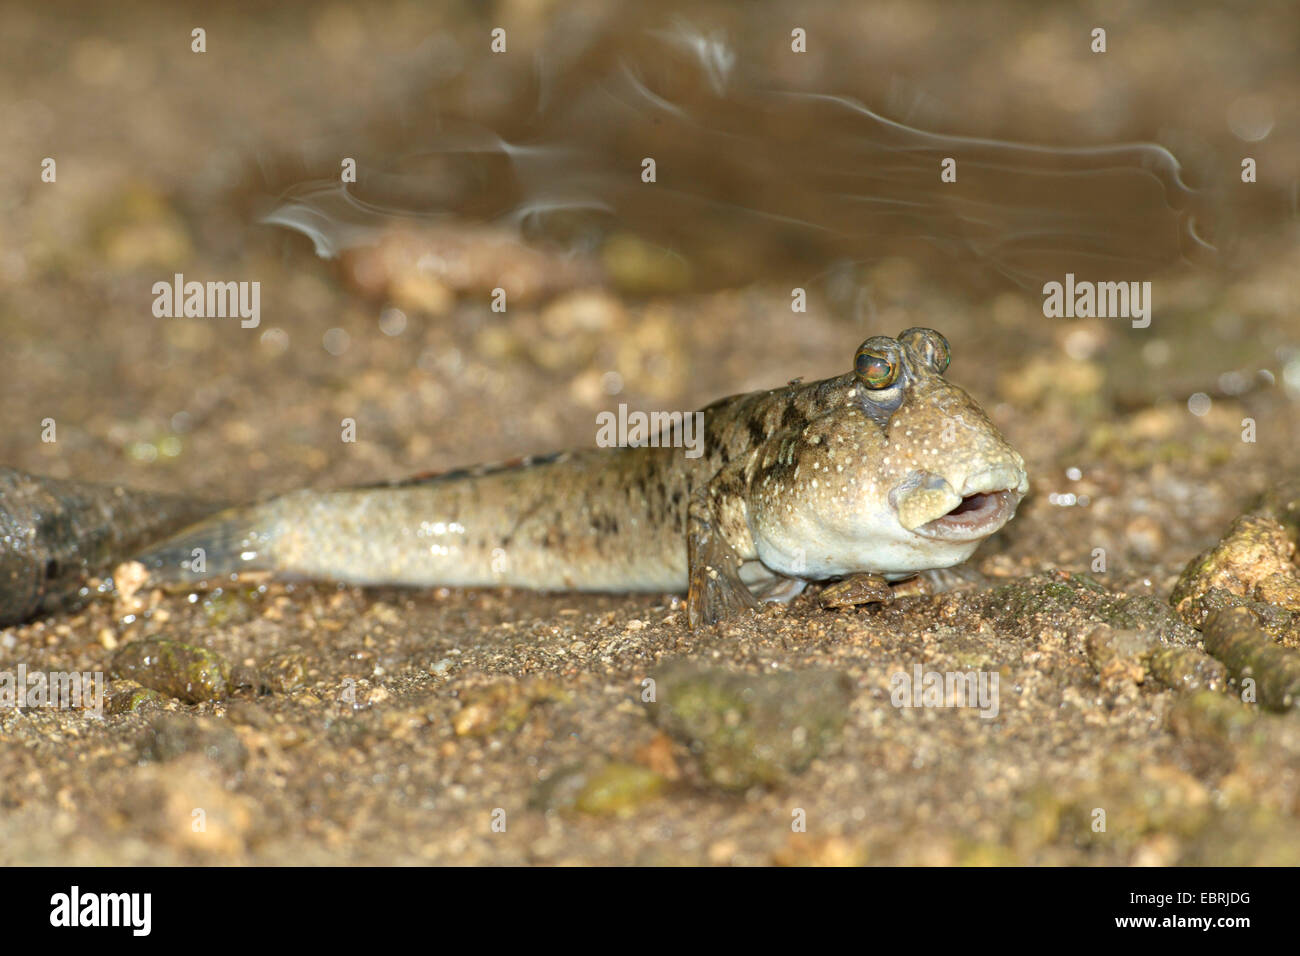 mudskippers, mudhoppers, climbing-fish (Periophthalmus spec.), on the shore, Seychelles, Mahe - Stock Image